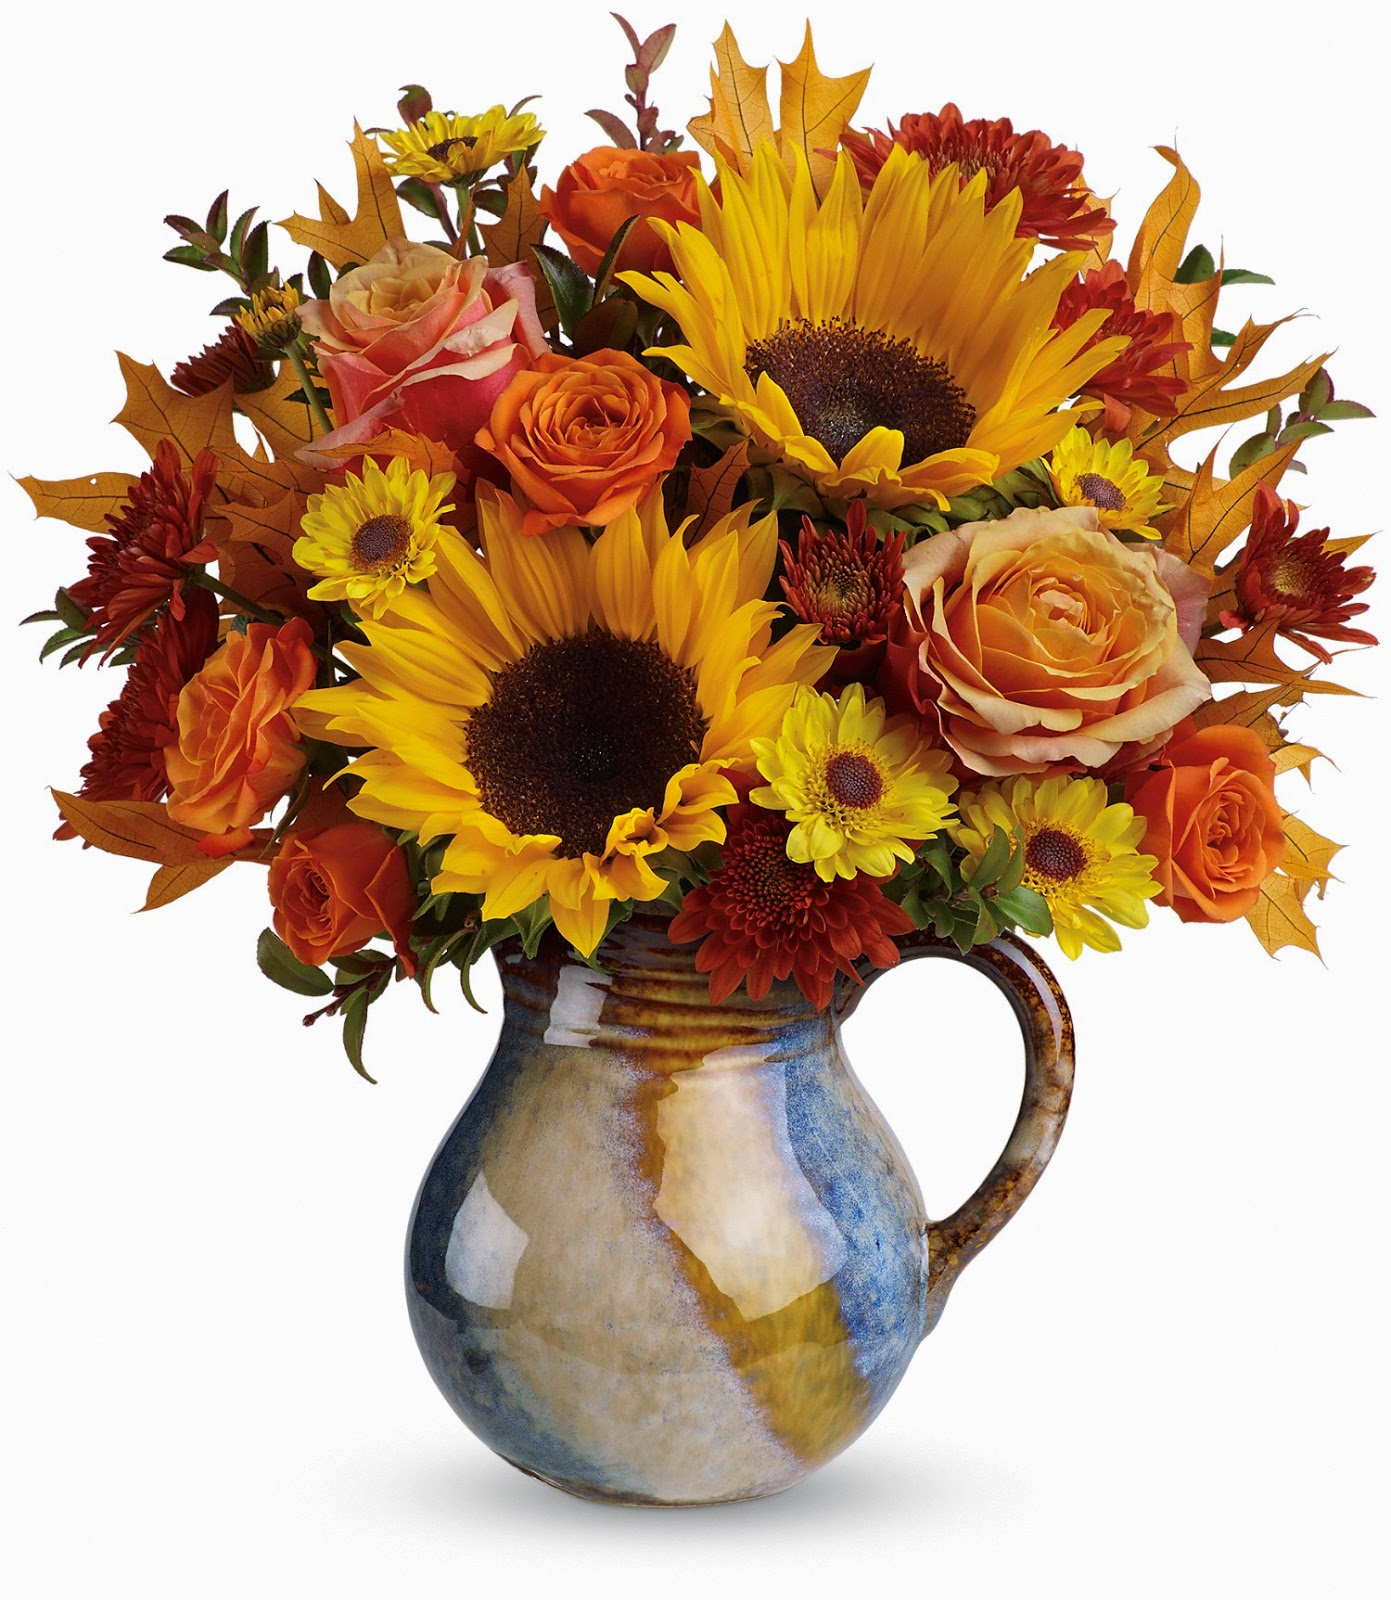 http://www.larose.com/the-florist/send-holiday-flowers/order-thanksgiving-flowers/teleflora-glaze-of-glory-bouquet/